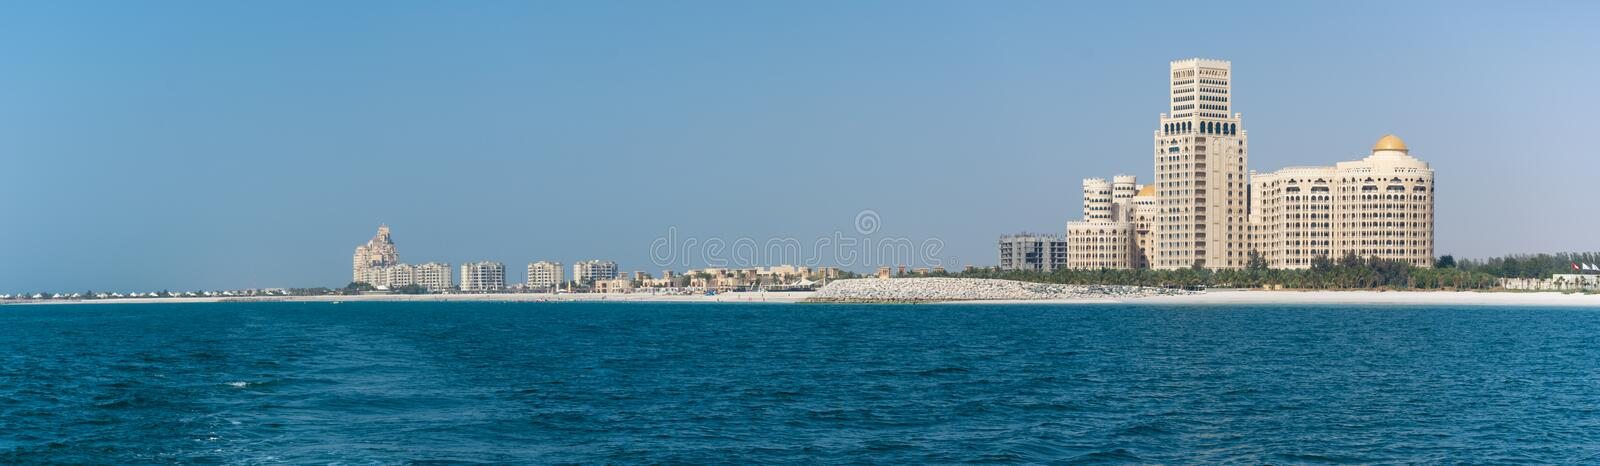 Panorama of Waldorf Astoria in Ras al Khaimah, United Arab Emirates UAE with the sea and beach in view royalty free stock photo